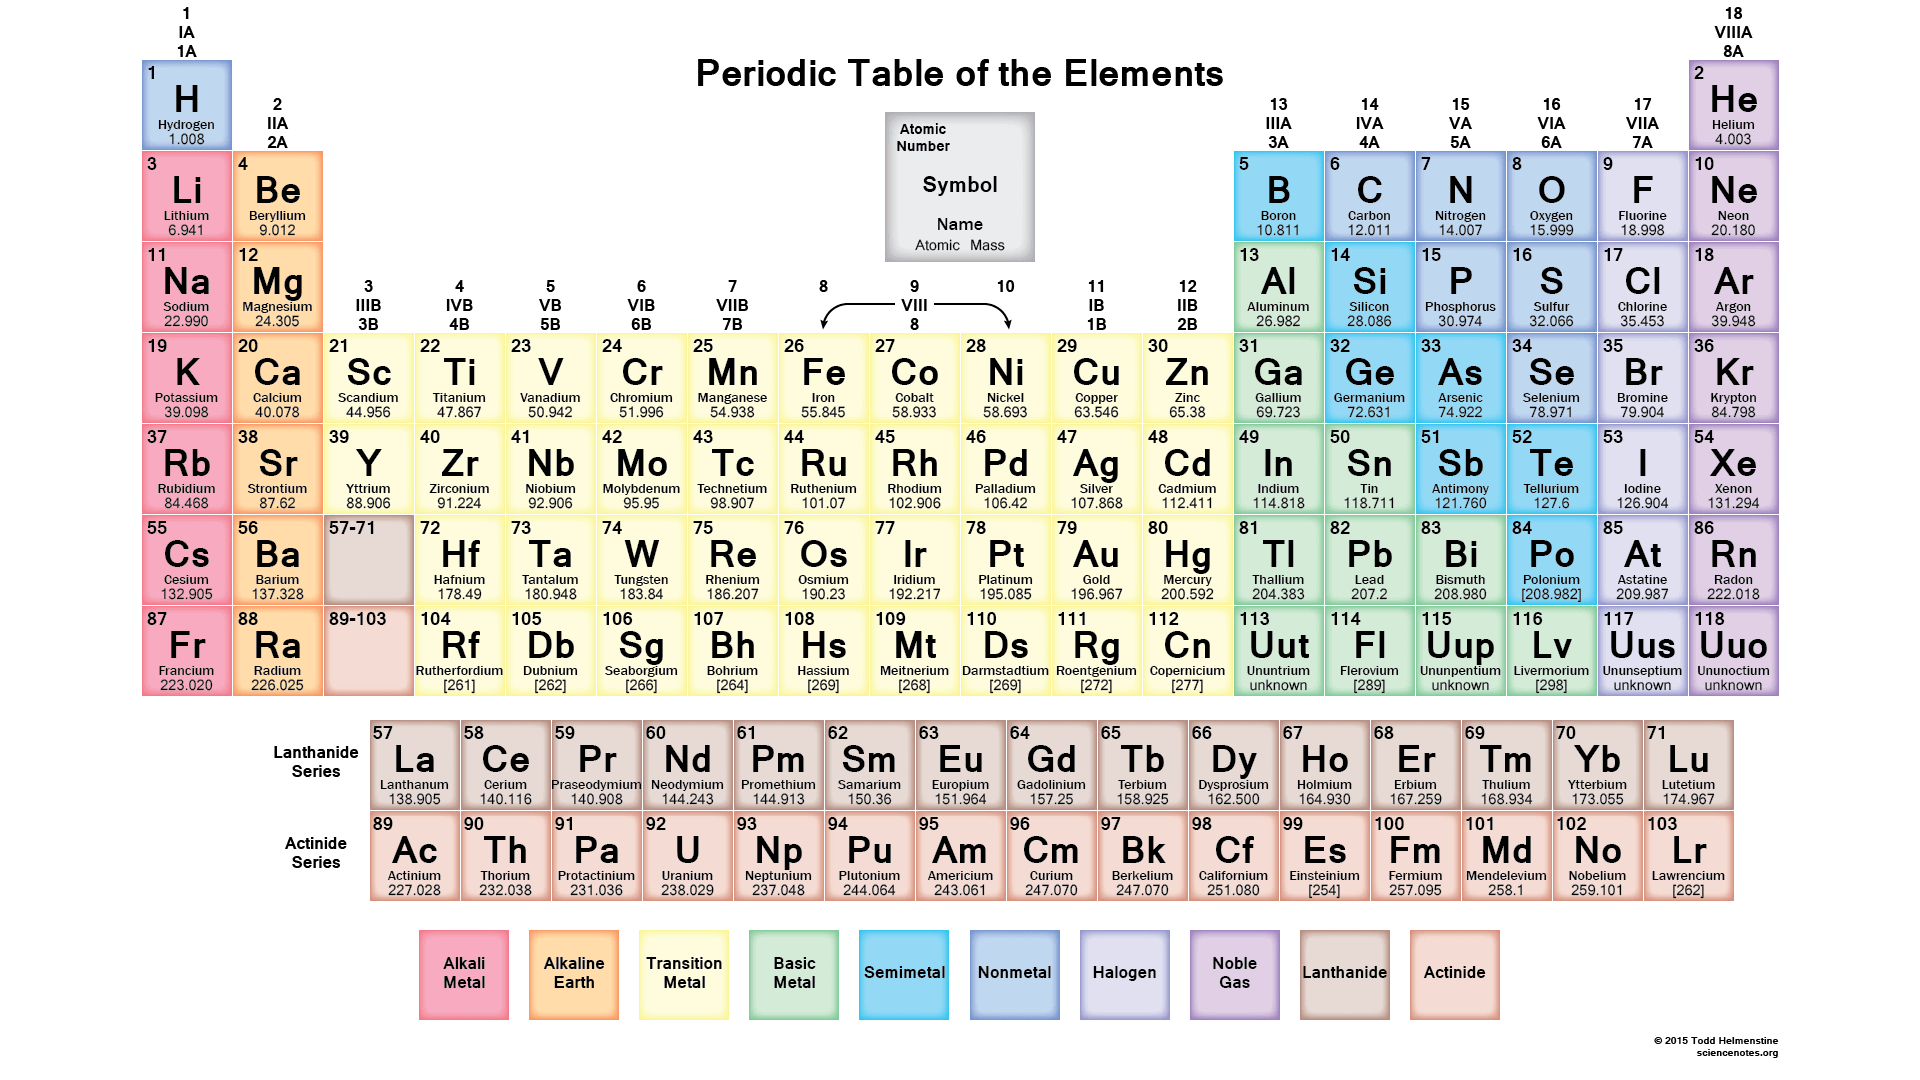 30 printable periodic tables for chemistry science notes and color printable periodic table gamestrikefo Gallery